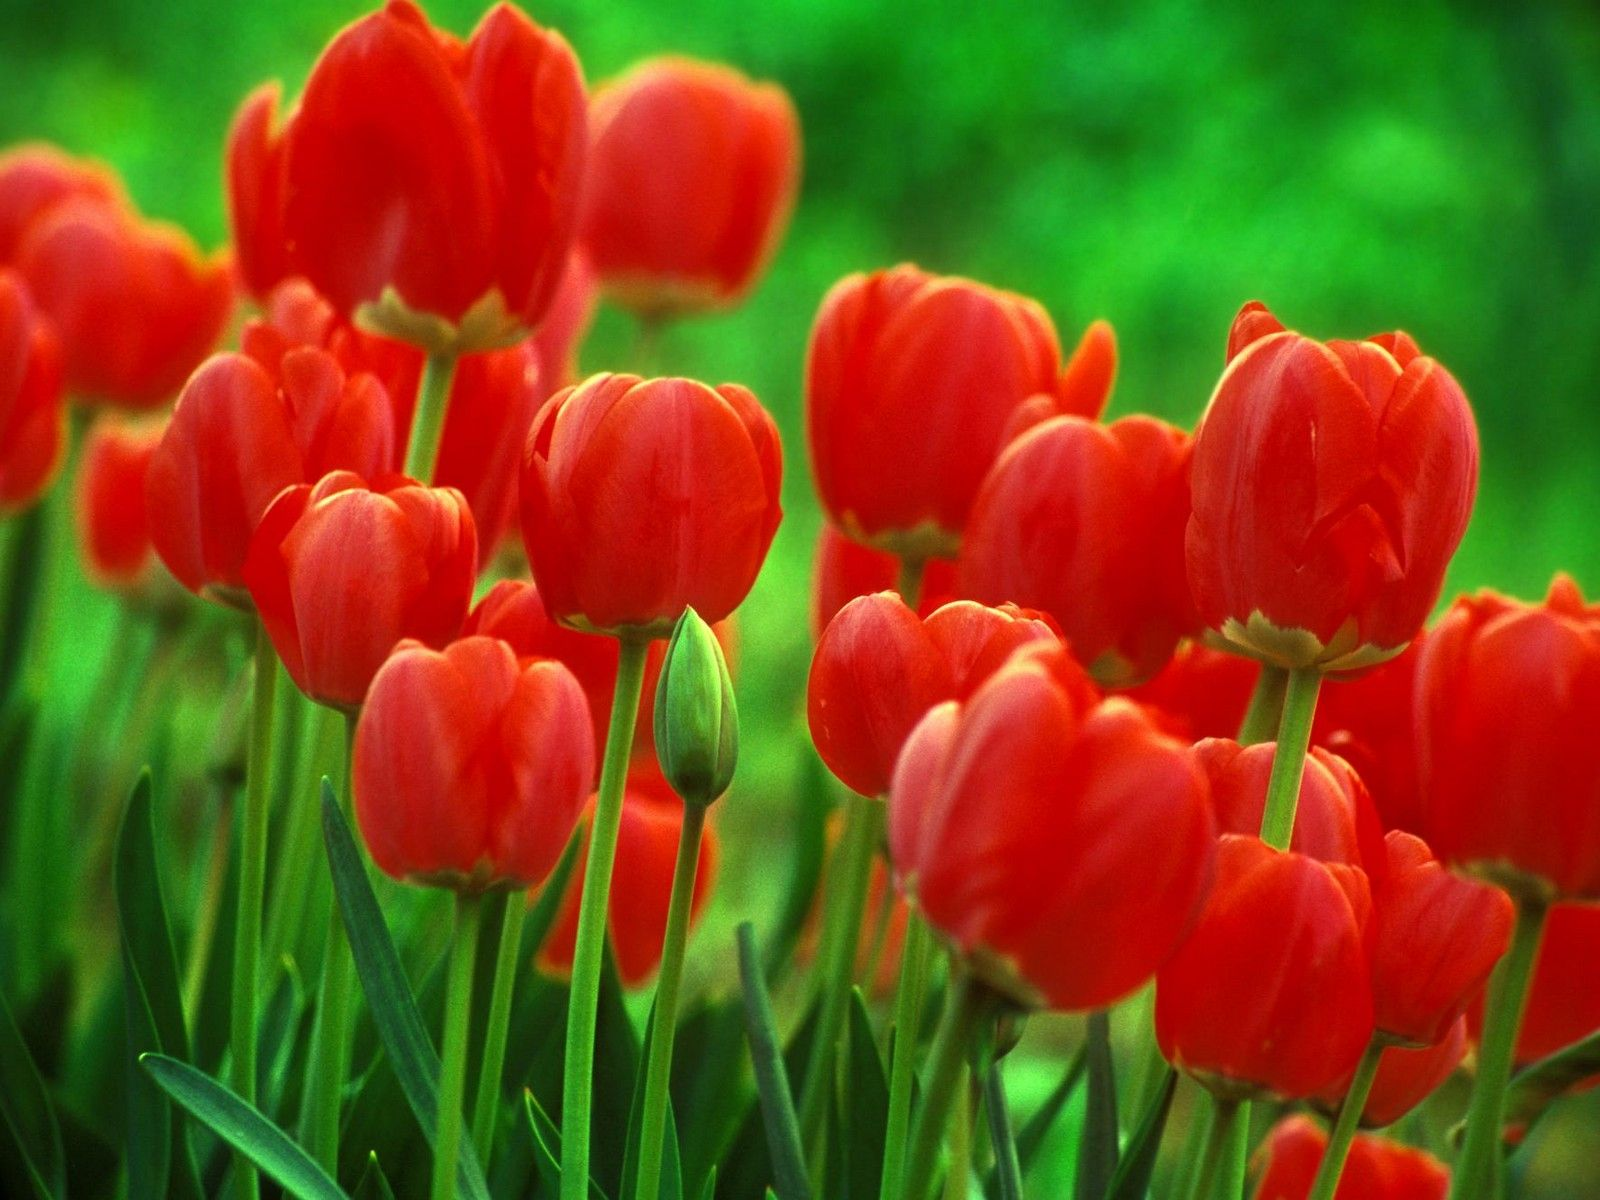 Tulips Bulb Flowers Amazing Flowers Red Tulips